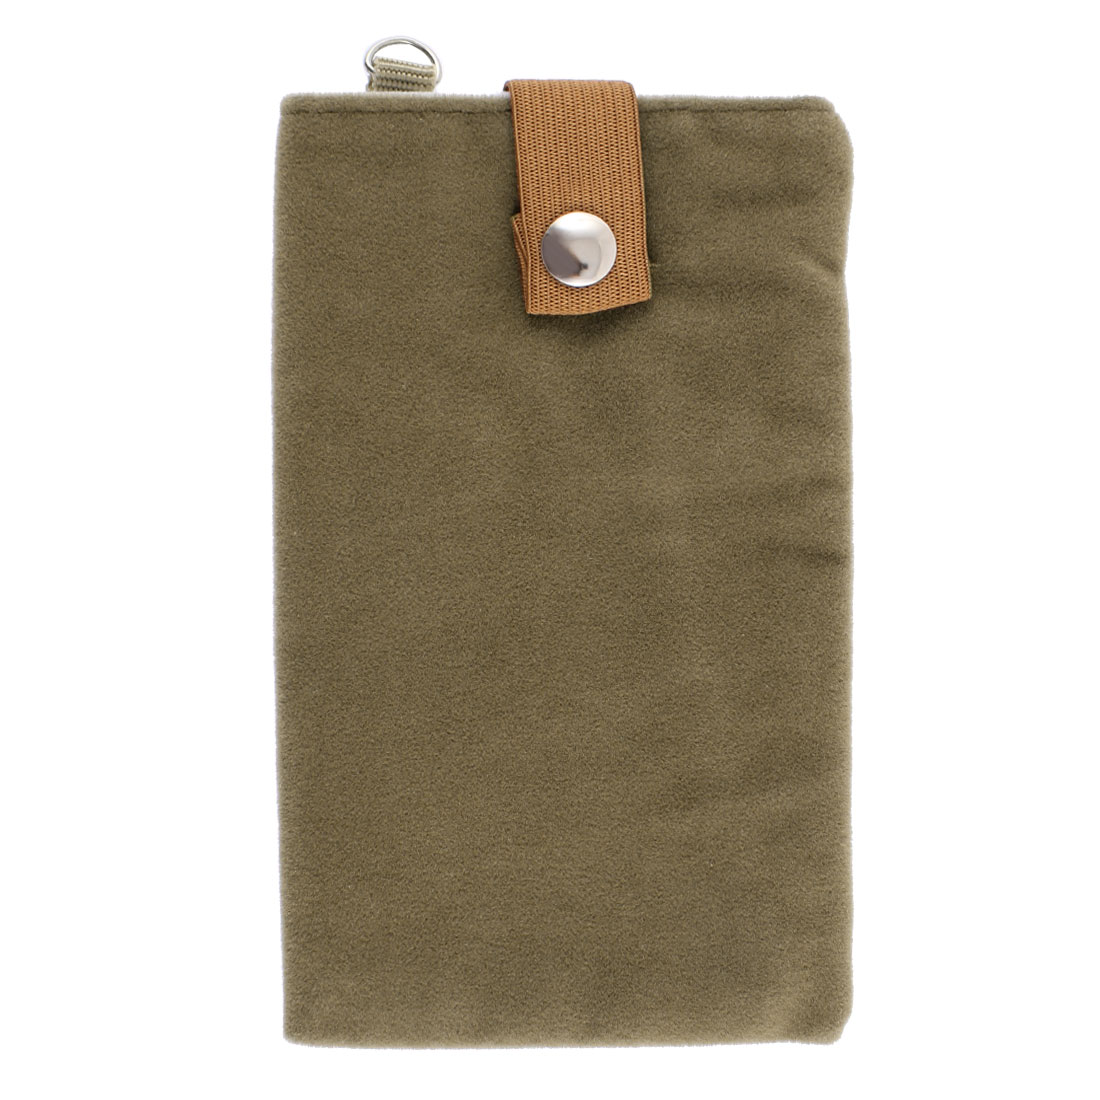 Double Layer Magnetic Clasp Button Cell Phone Pouch Bag Holder Brown